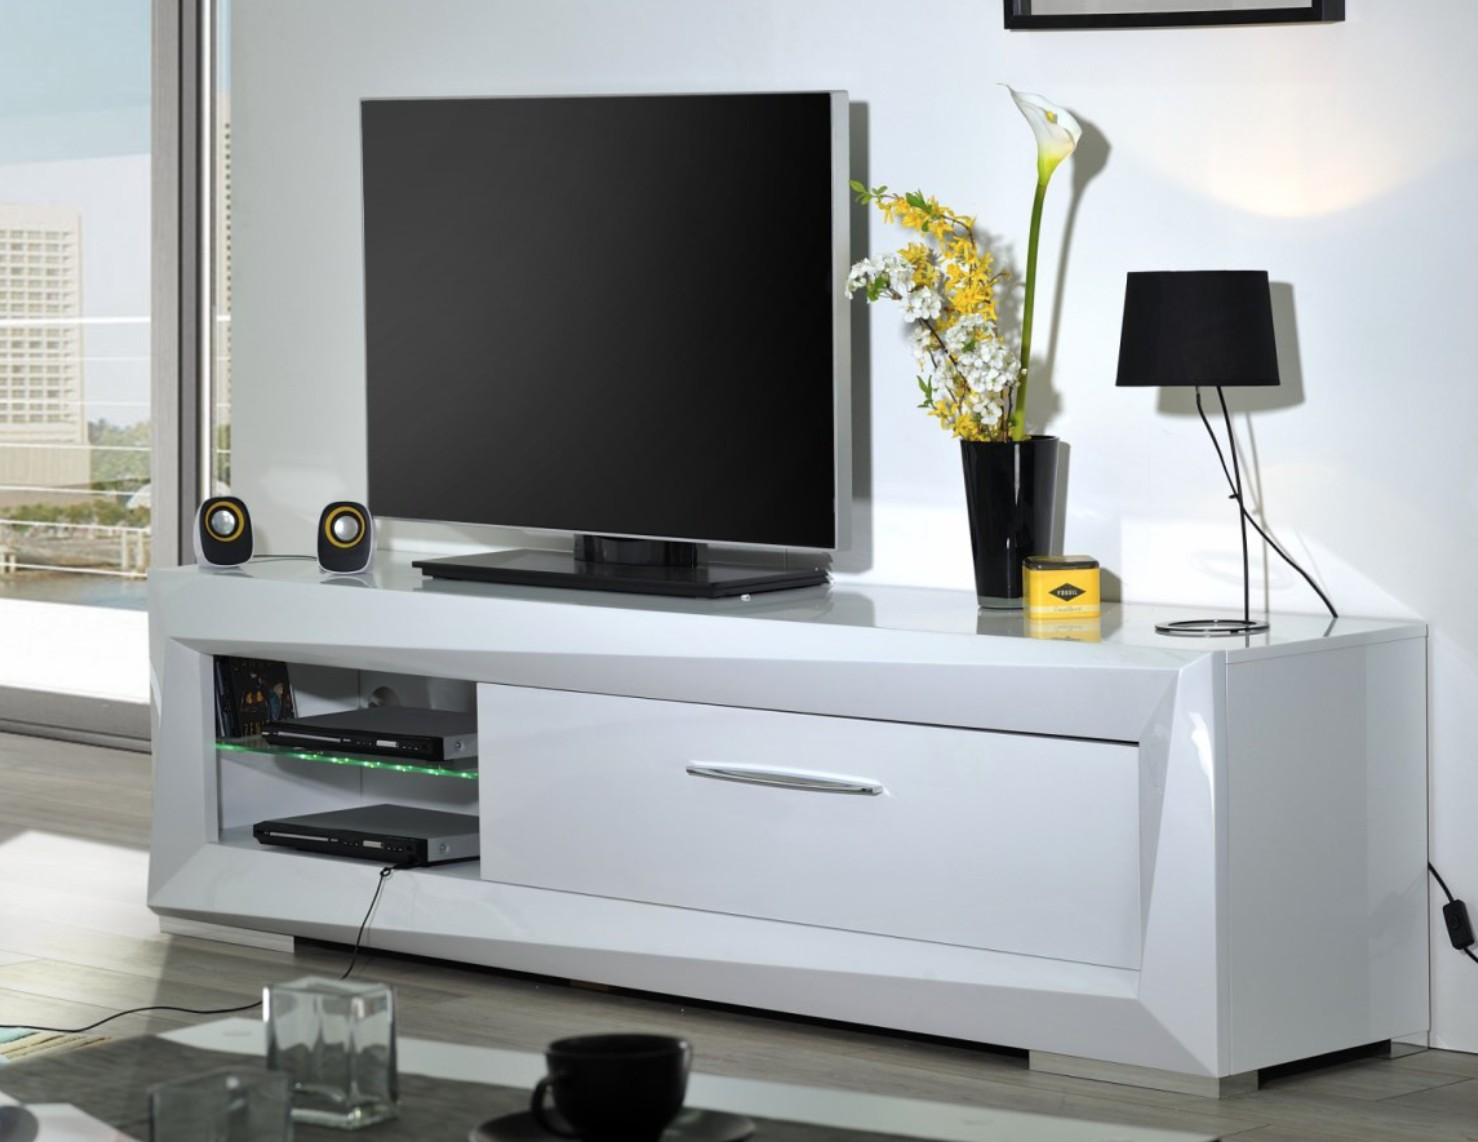 meuble tv 1 tiroir blanc laqu must mod le sans led. Black Bedroom Furniture Sets. Home Design Ideas